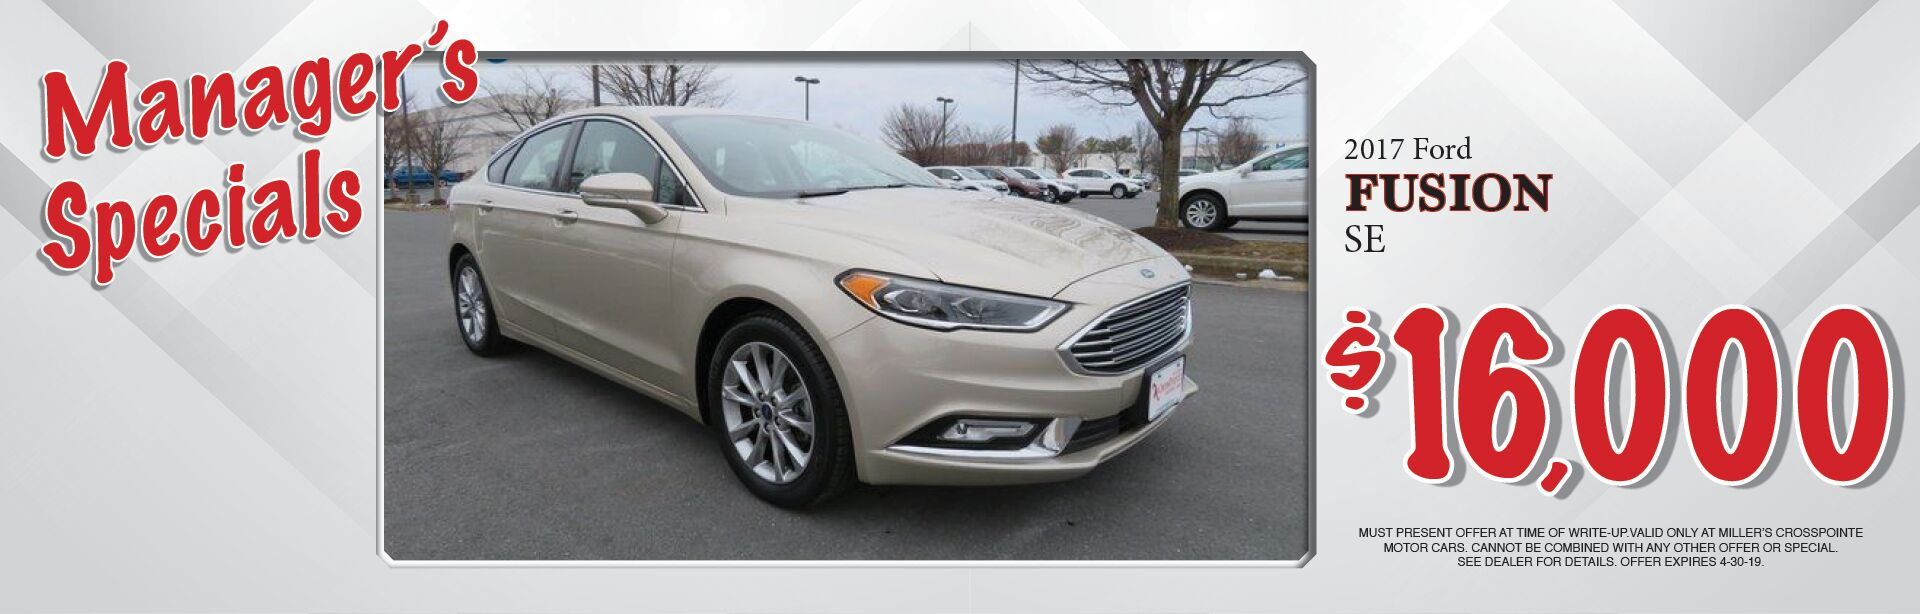 2017 Ford Fusion Special